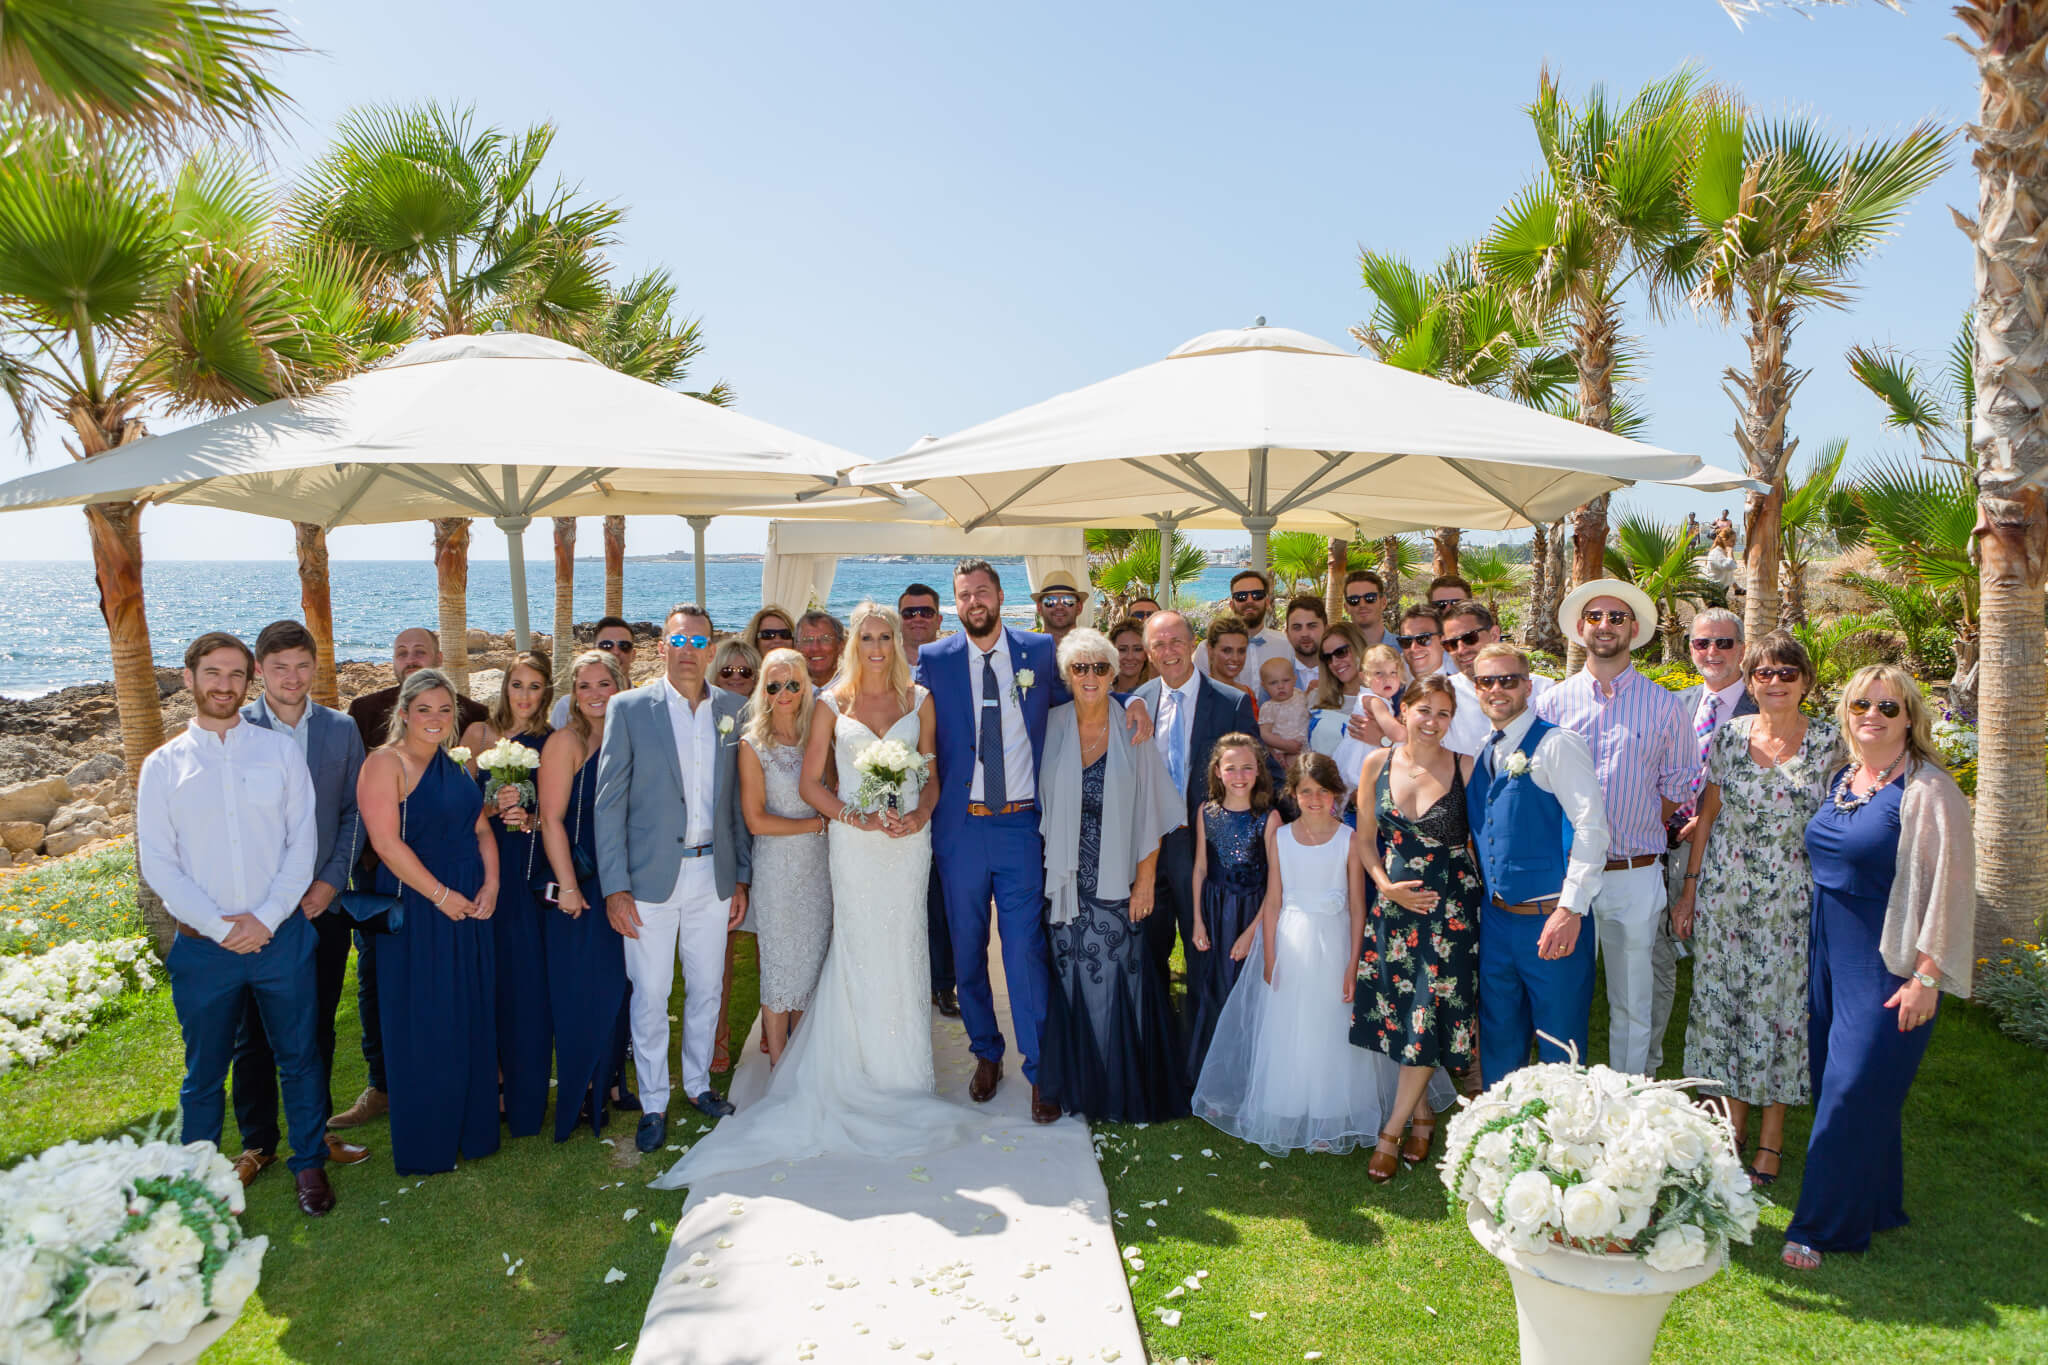 How i survived my wedding abroad tips tricks wedding abroad paphos cyprus at the olympic lagoon resort solutioingenieria Image collections